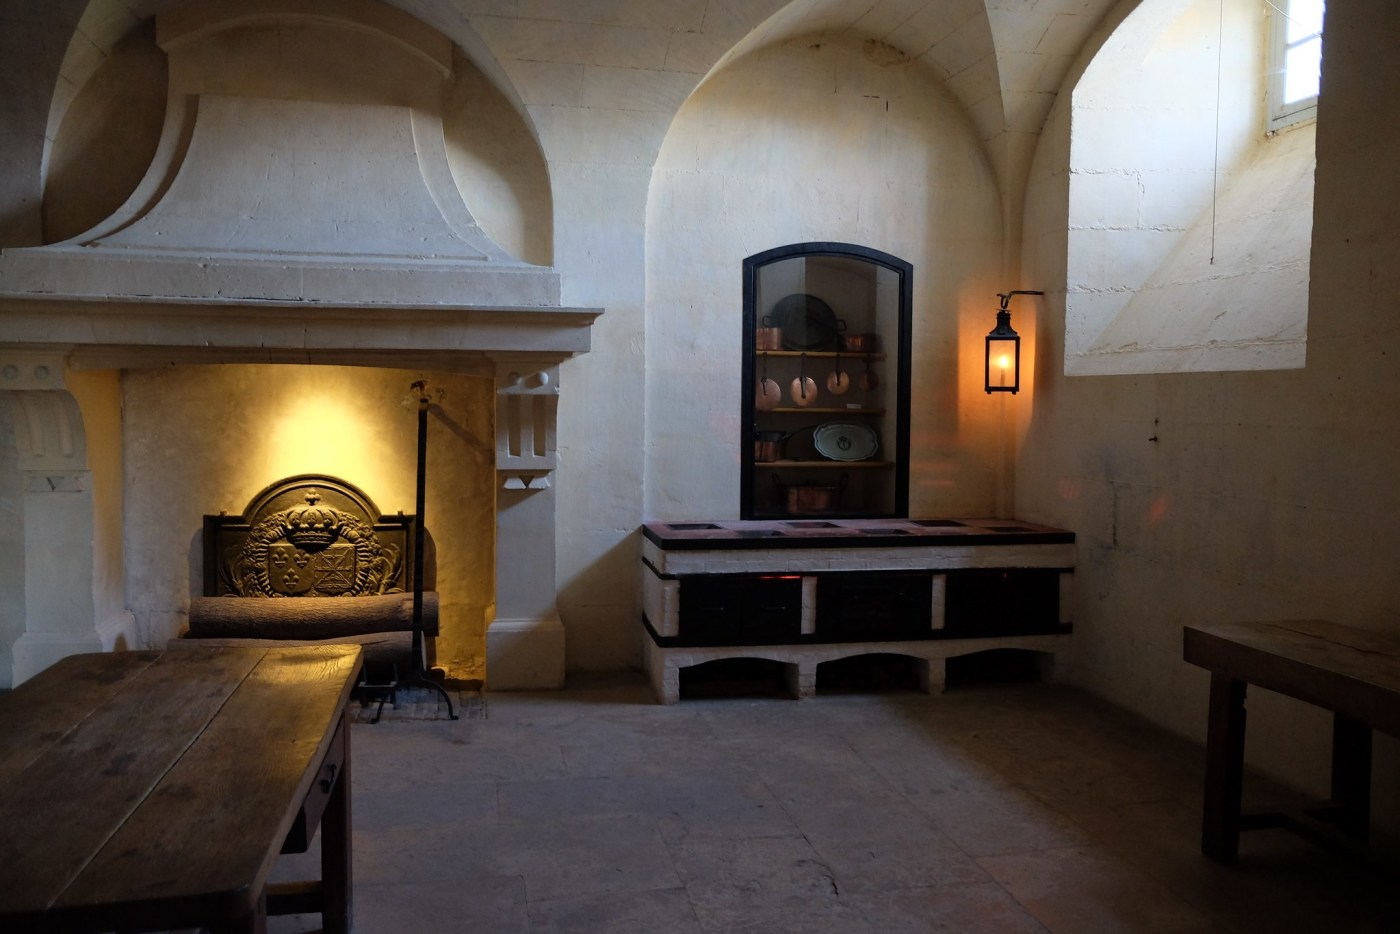 The Kitchen inside the Petit Trianon